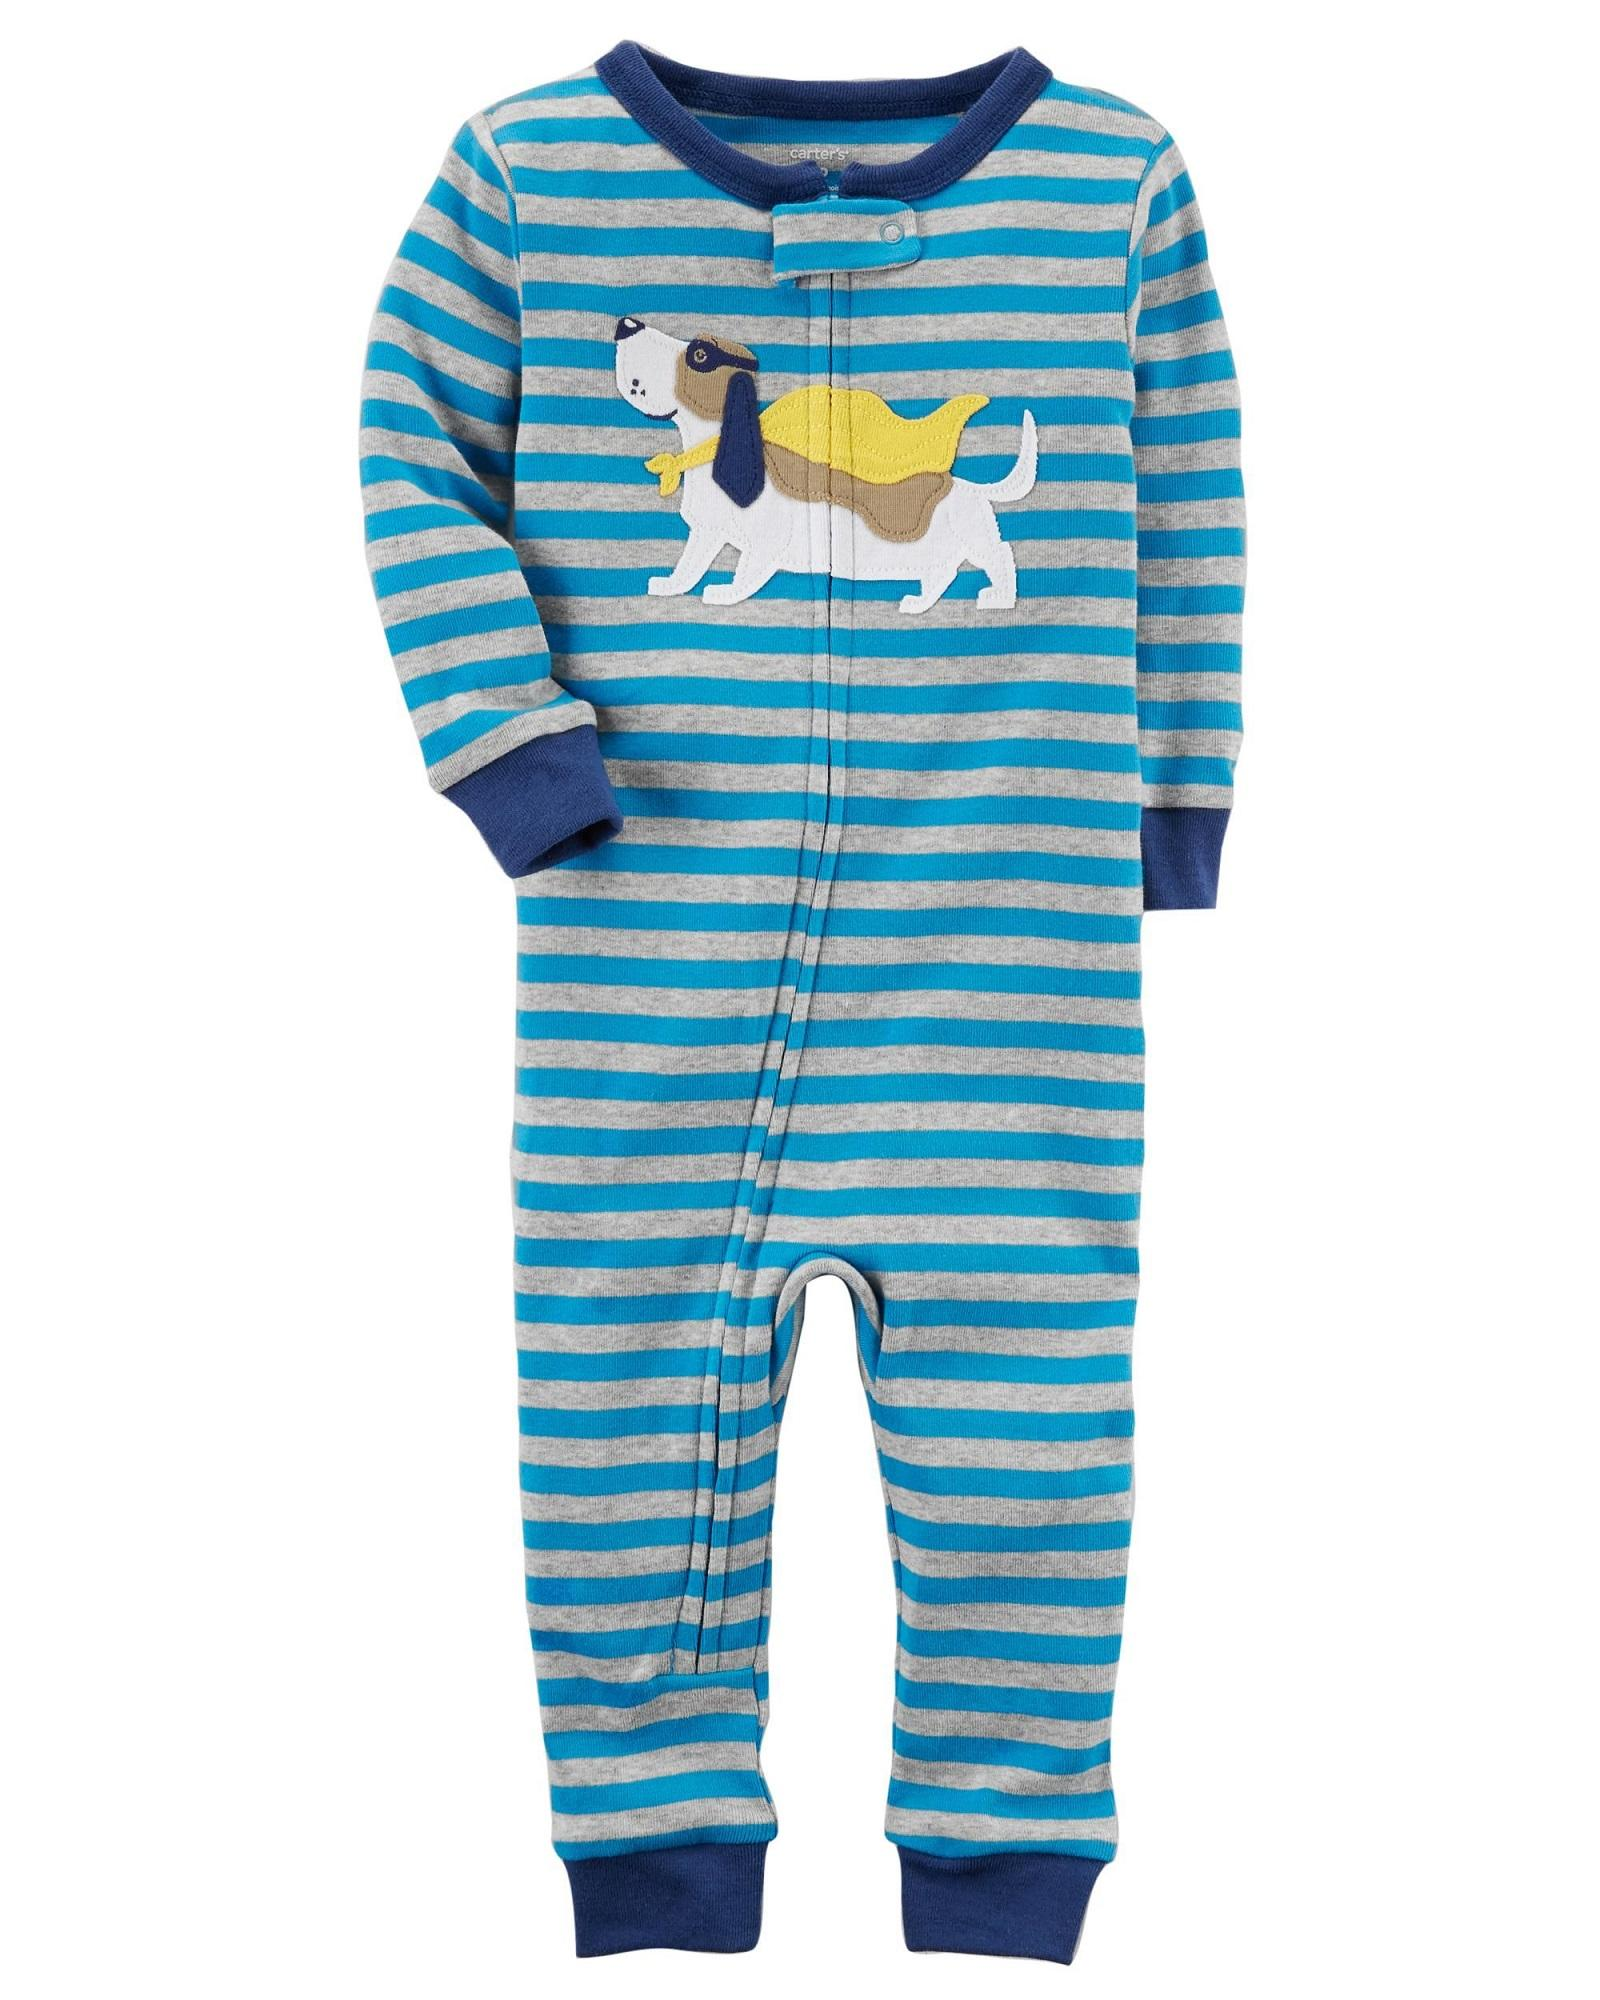 d4ae4788f Carters 1-Piece Doggy Snug Fit Cotton Footless PJs Sleep and Play Pyjama  12month 18month